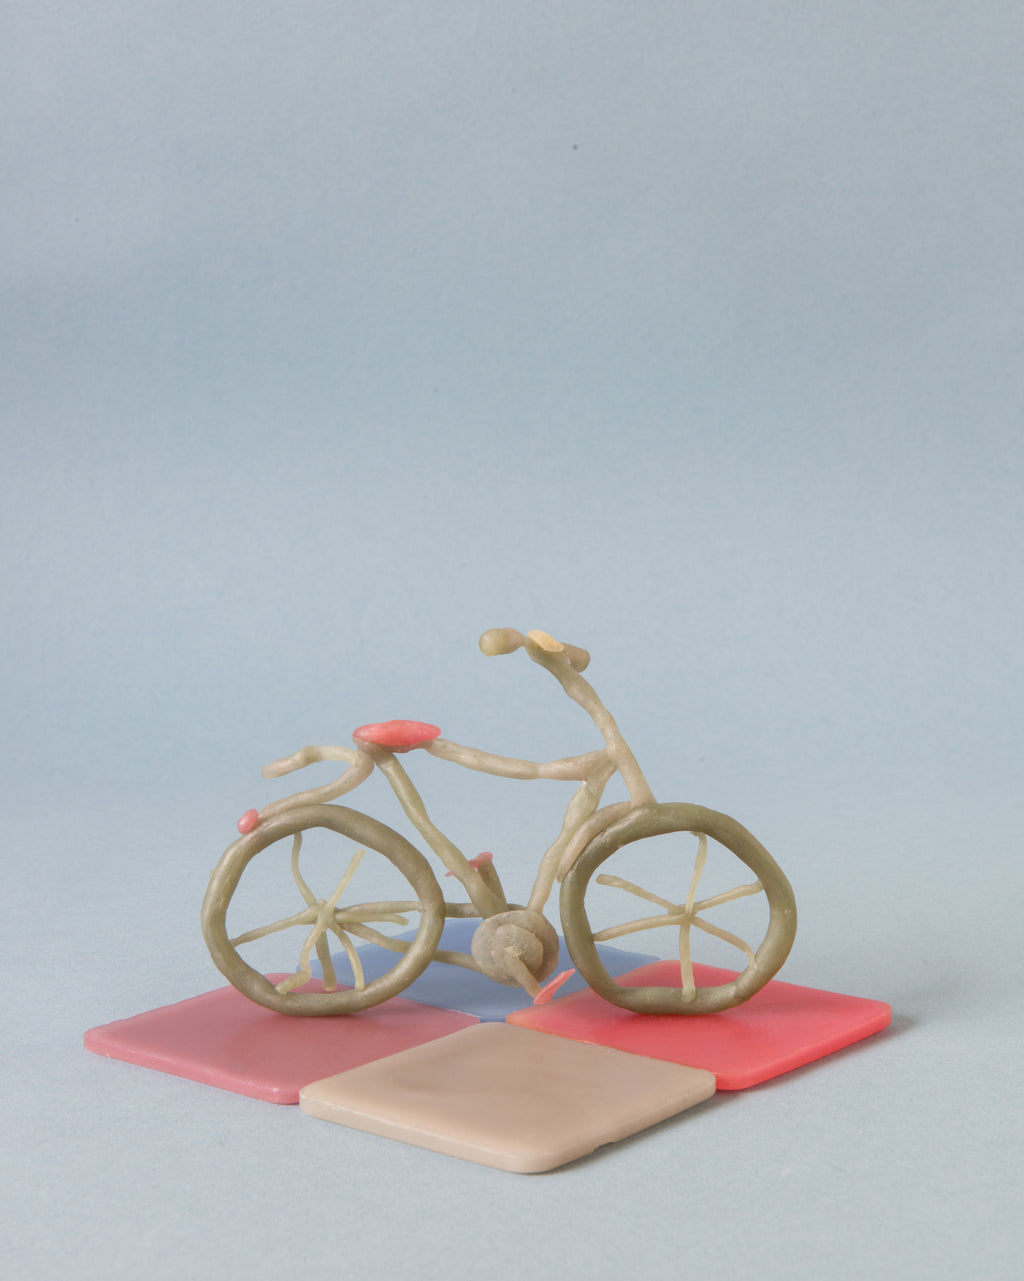 modelling beeswax, open ended waldorf toy organic beeswax toy handmade in india, art materials, 12 pastel colours, bicycle